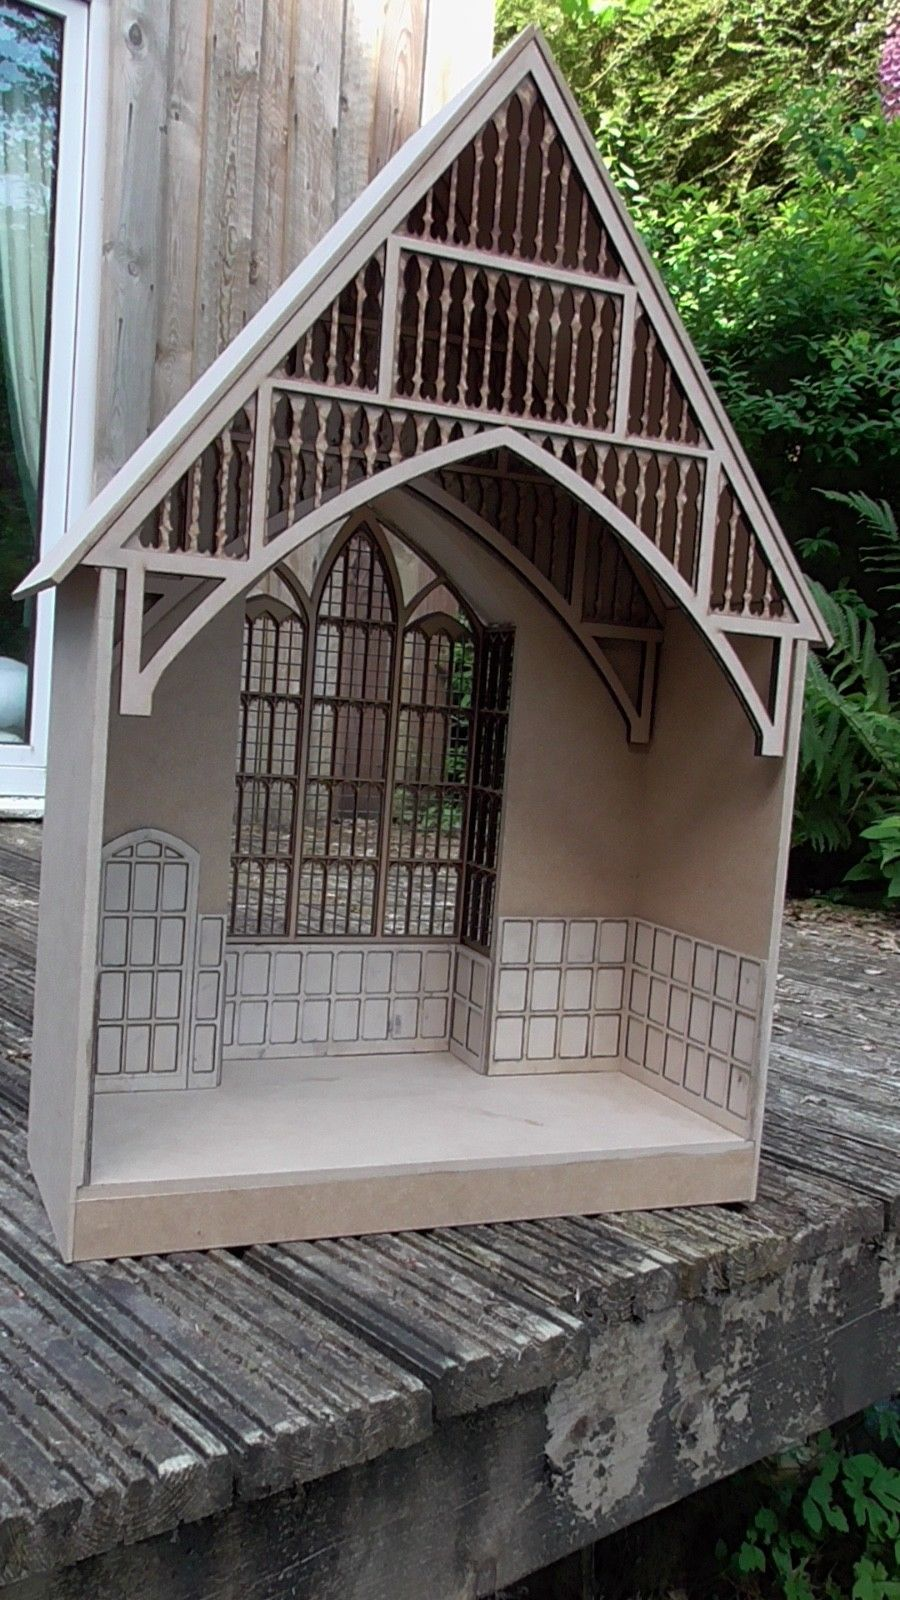 1 12 Scale Dolls House The Great Hall Room Box Inspired By Harry Potter By Dhd Room Box Hall Room Large Dolls House